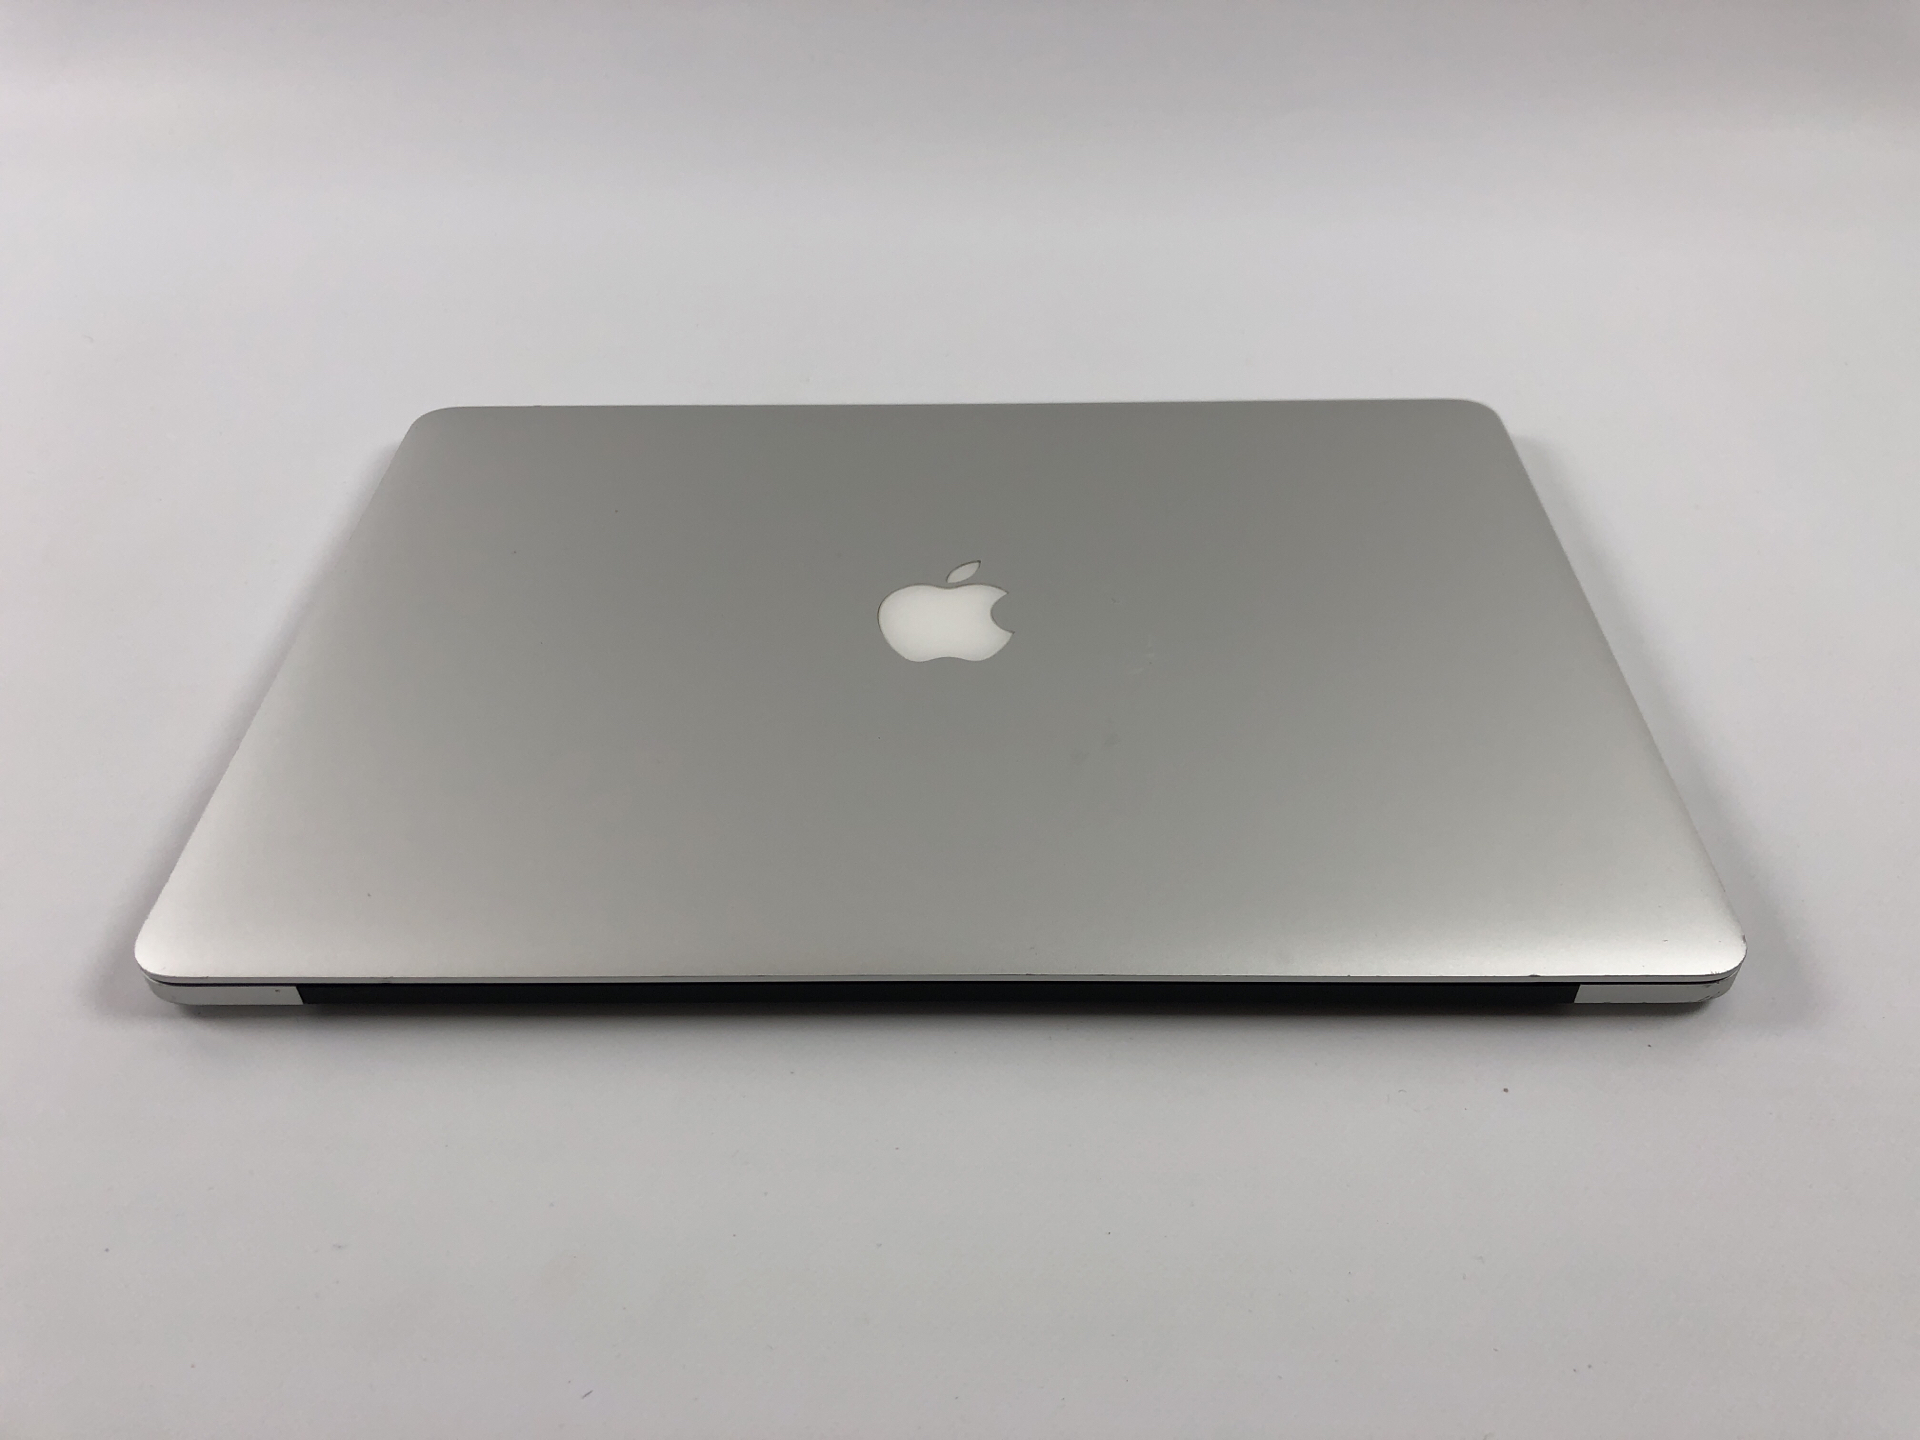 "MacBook Pro Retina 15"" Mid 2015 (Intel Quad-Core i7 2.2 GHz 16 GB RAM 256 GB SSD), Intel Quad-Core i7 2.2 GHz, 16 GB RAM, 256 GB SSD, Bild 3"